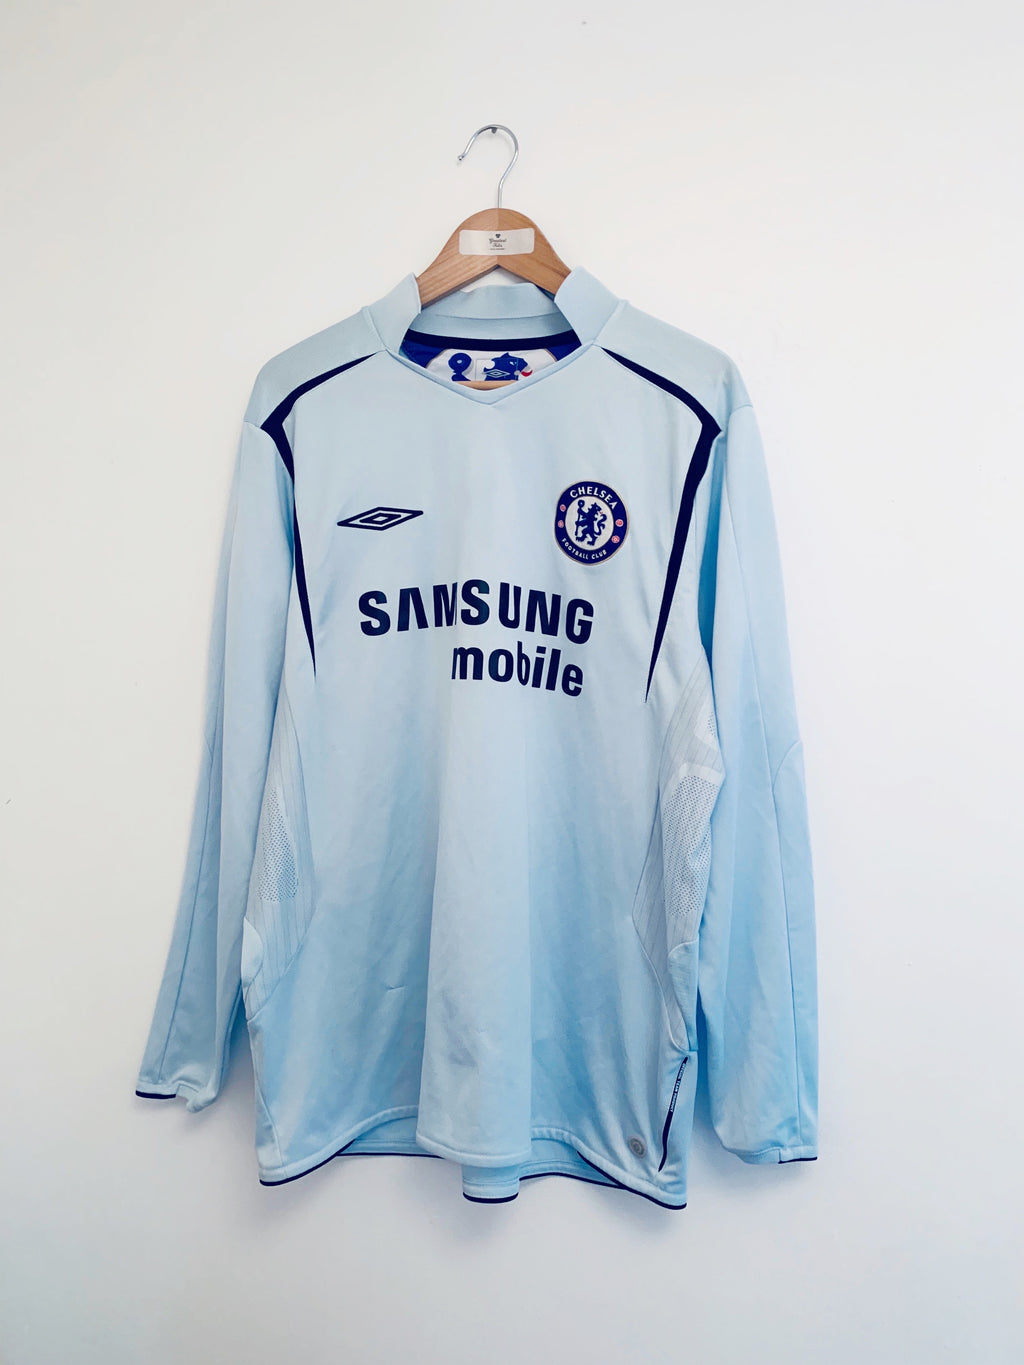 2005/06 Chelsea Away L/S Shirt (XL) 8.5/10